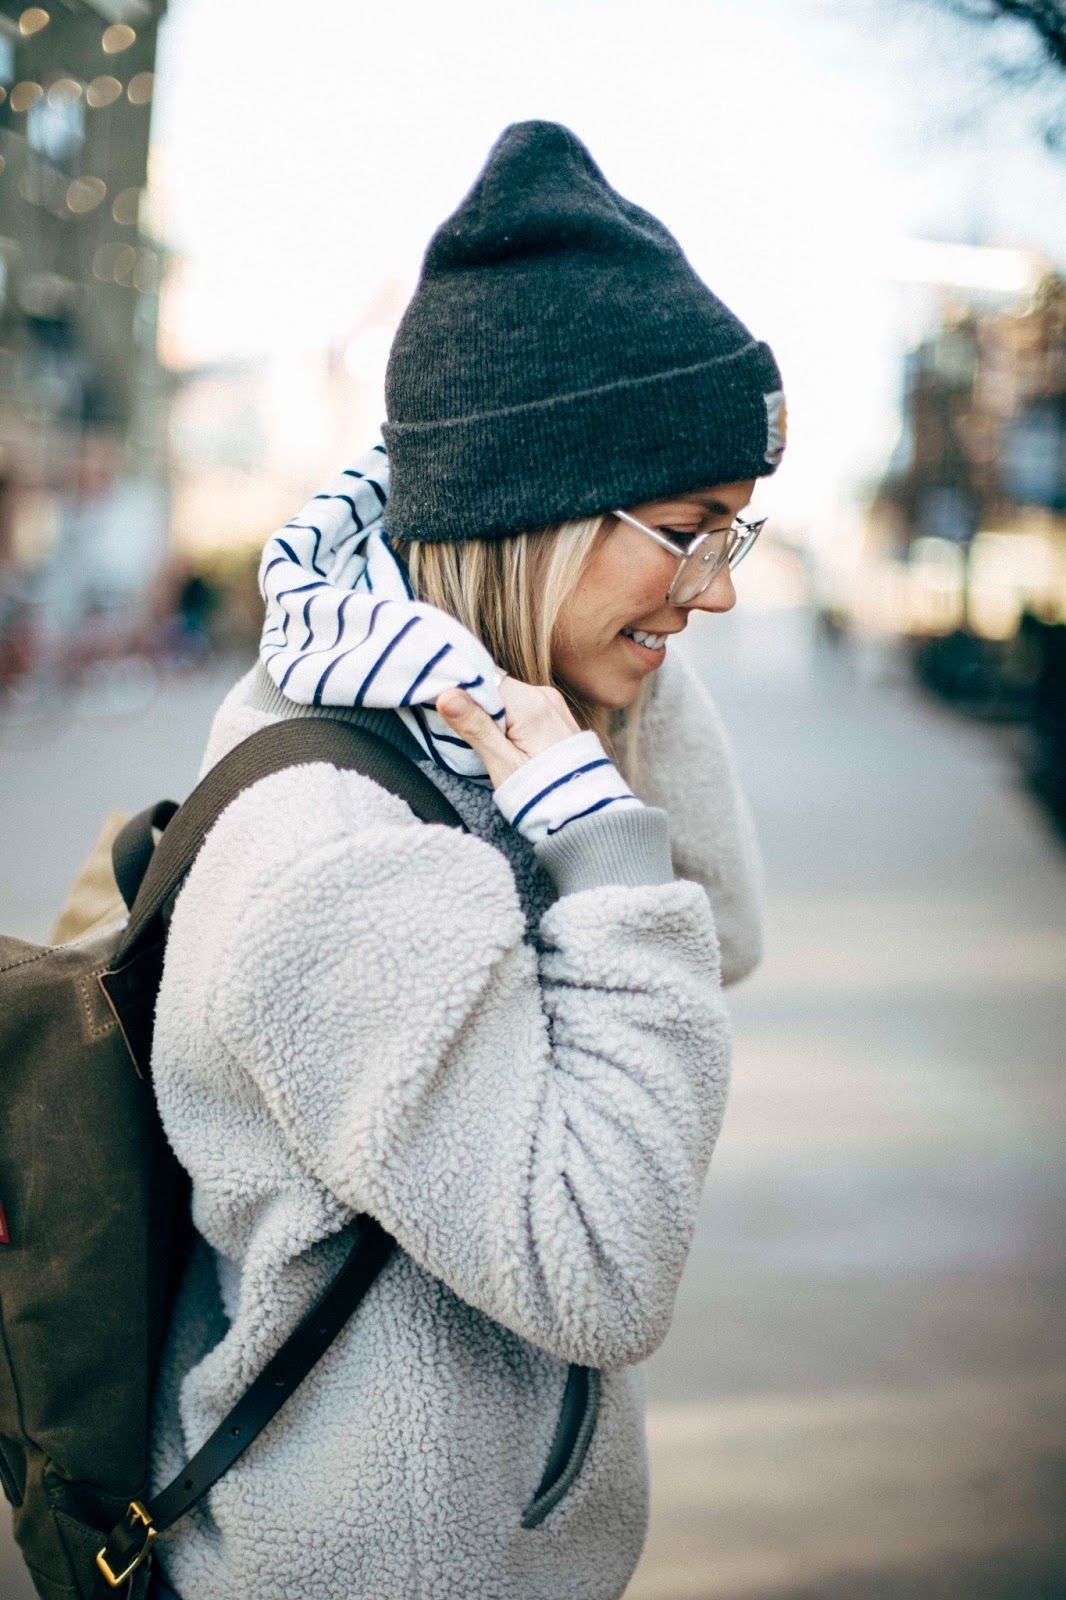 The Collaboration Blog: Casual Street Style #streetstyle #beanie #carhartt #winterfashion  Hat - Carhartt